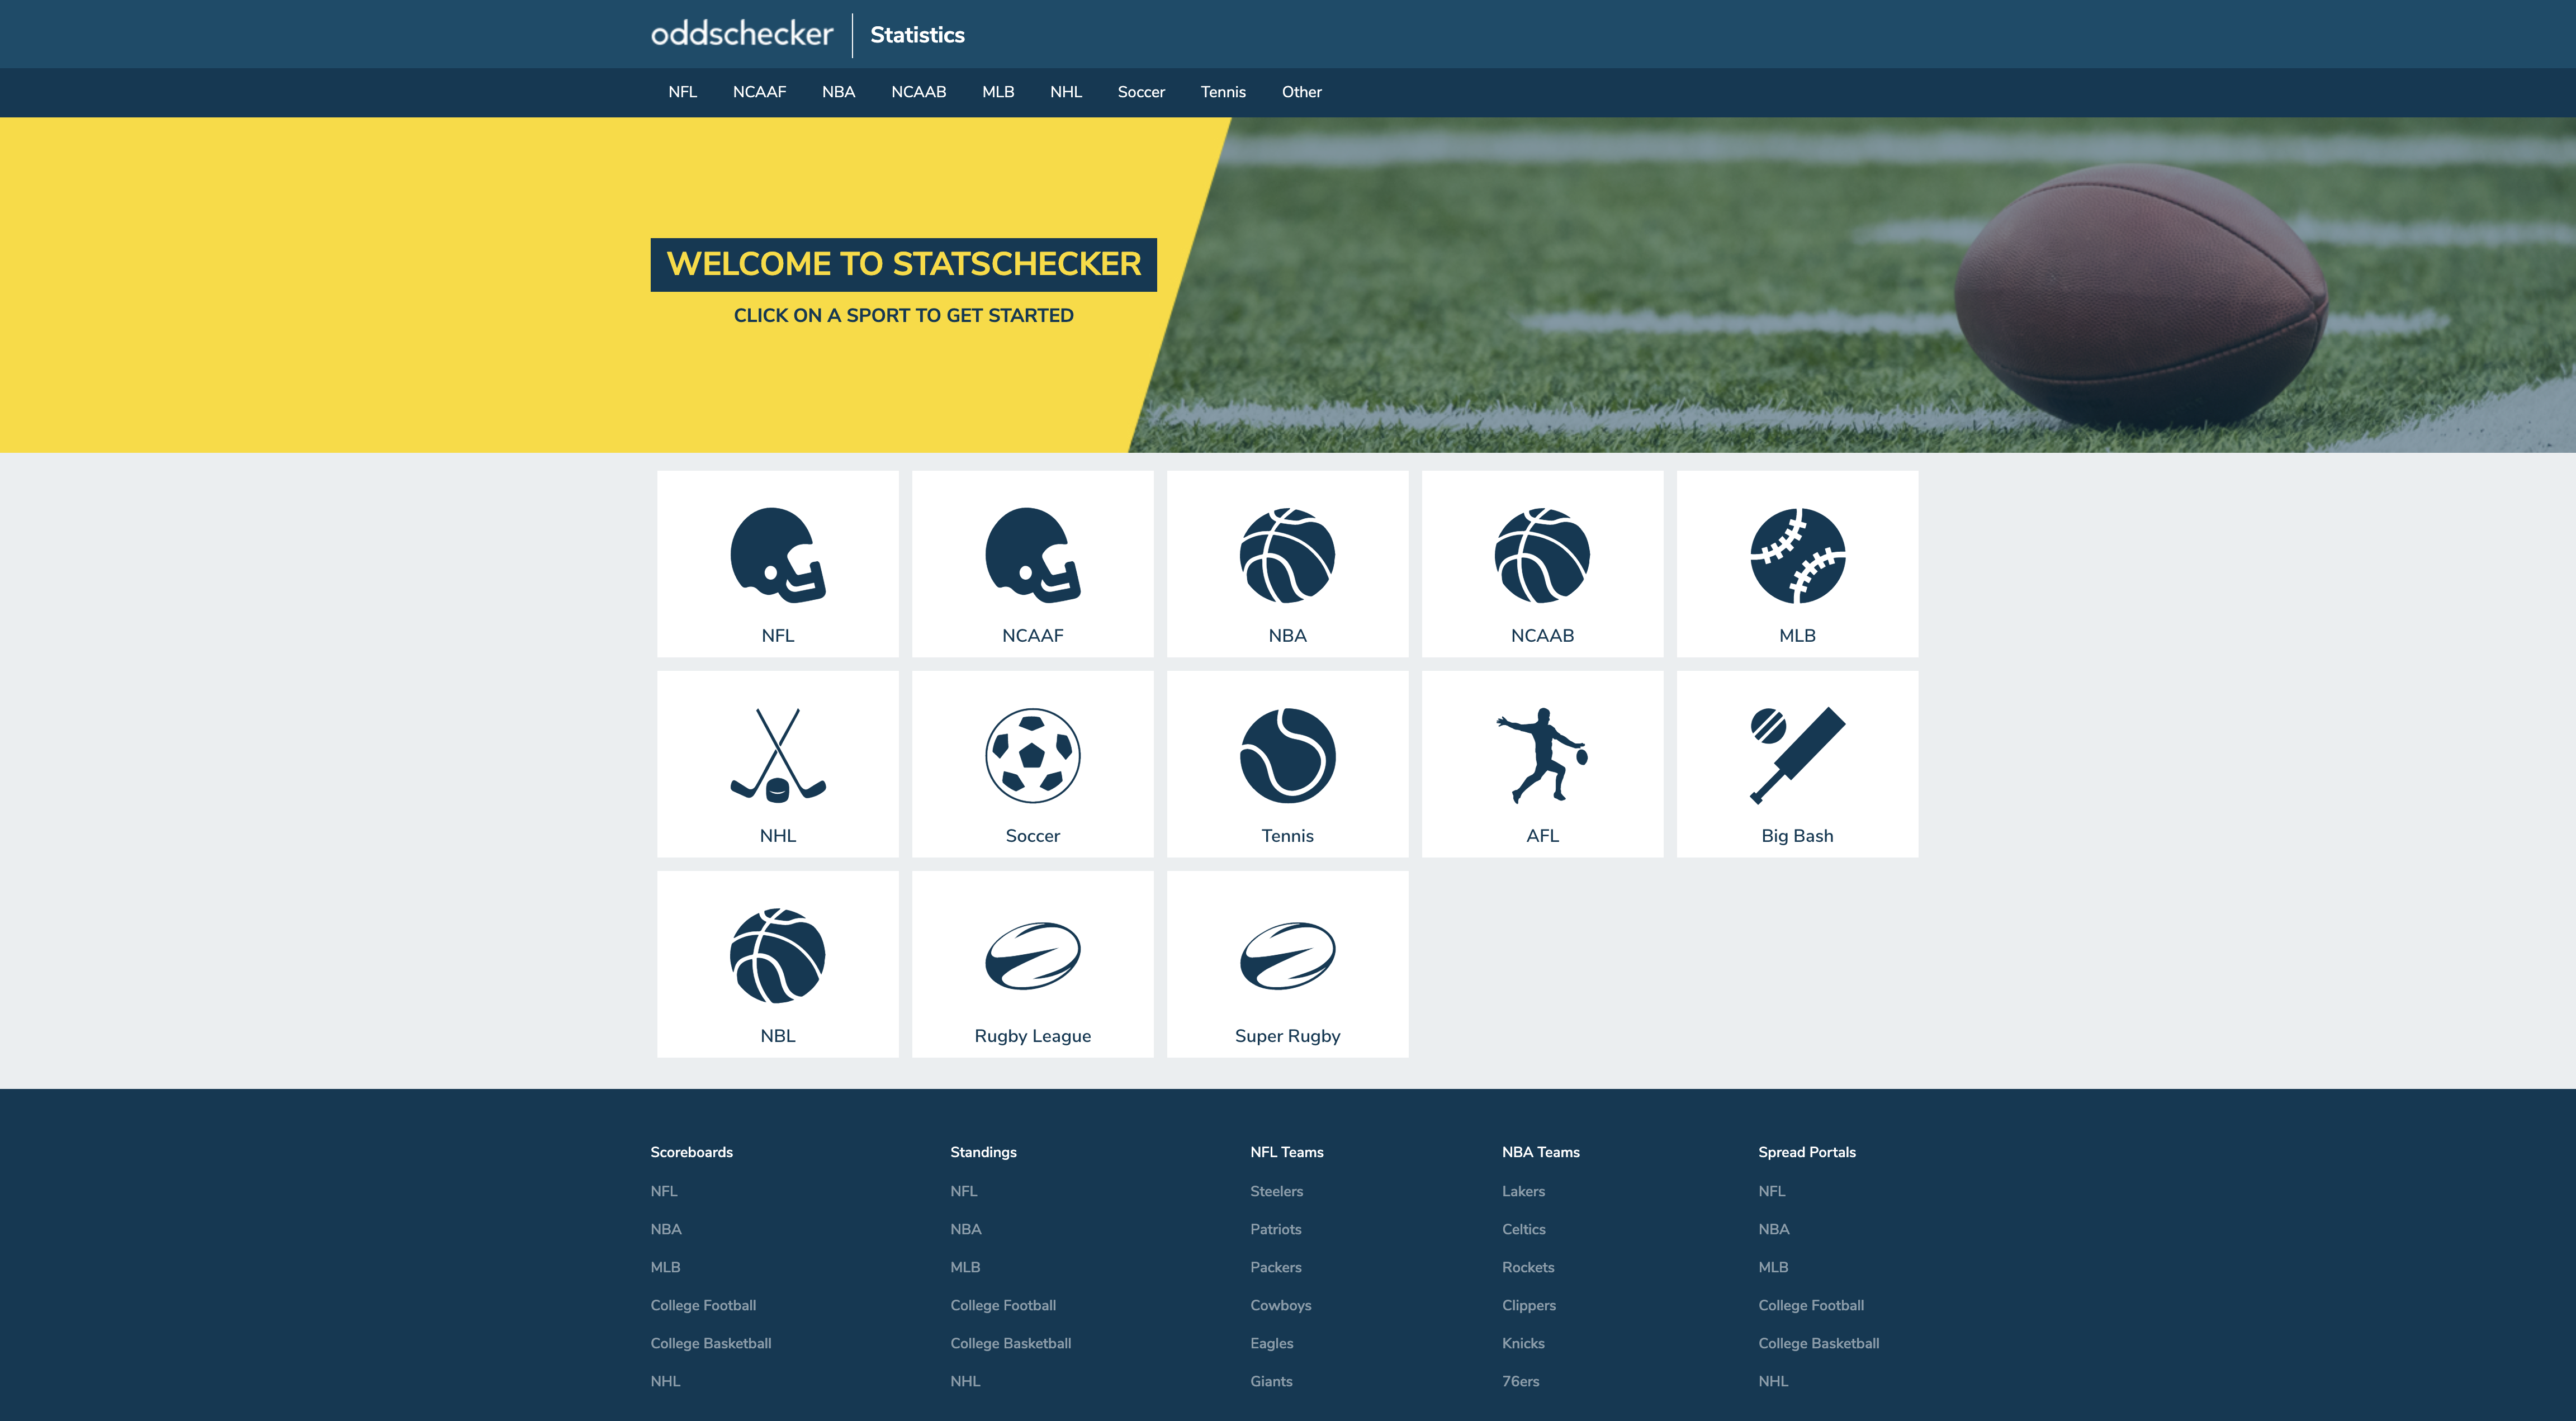 GTGNetwork.com continues USA growth with Oddschecker deal for iSport Genius